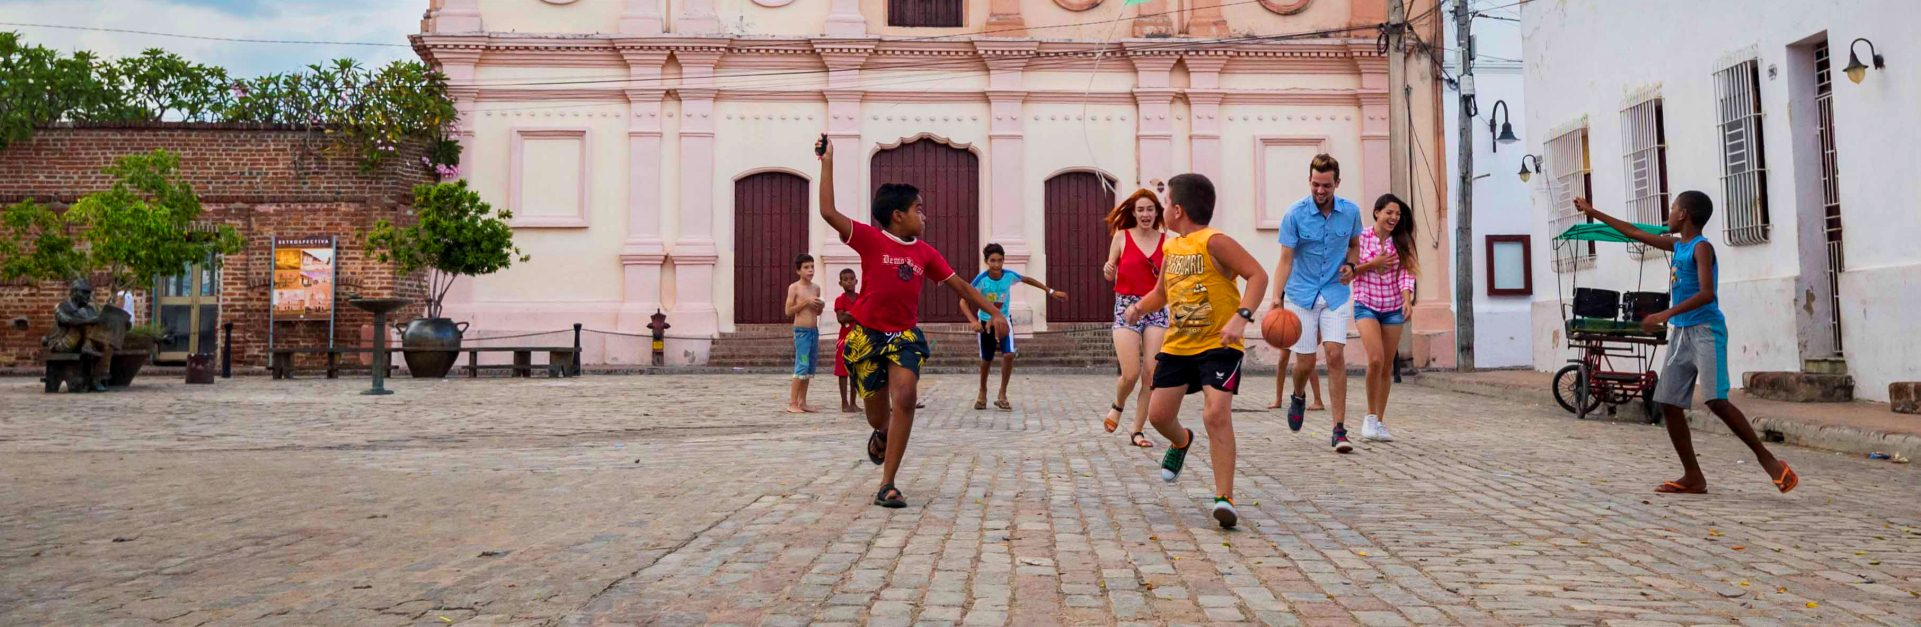 Kids playing, Camagüey, Cuba